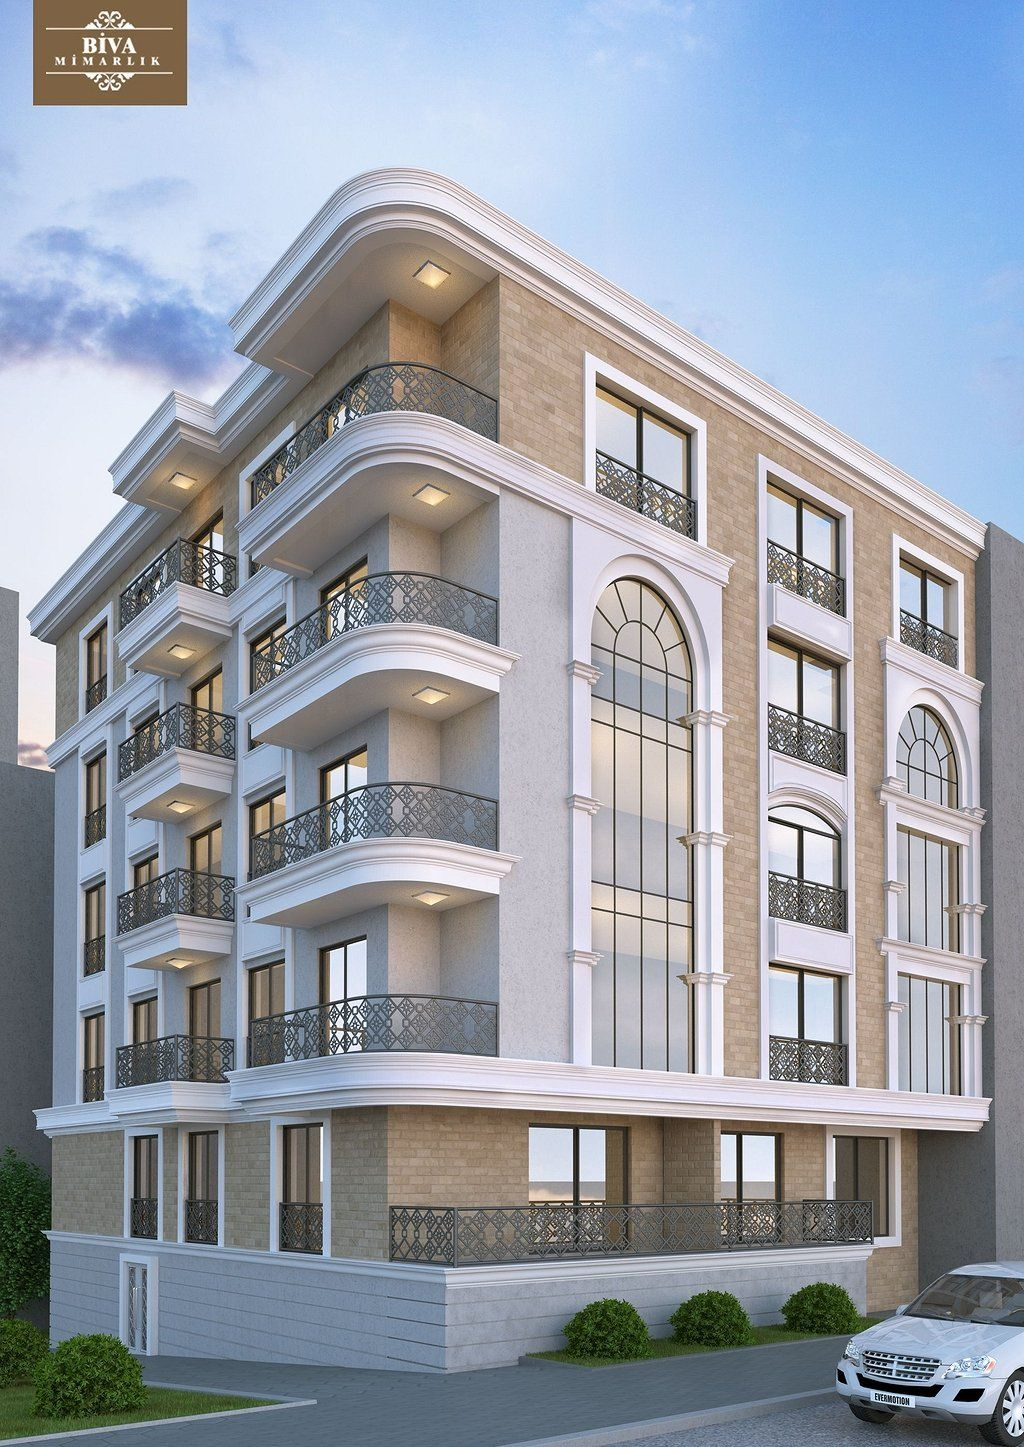 46 Modern Architecture Building Apartments Https Www Mobmasker Com Architecture Build Modern Architecture Building Apartment Architecture Facade Architecture